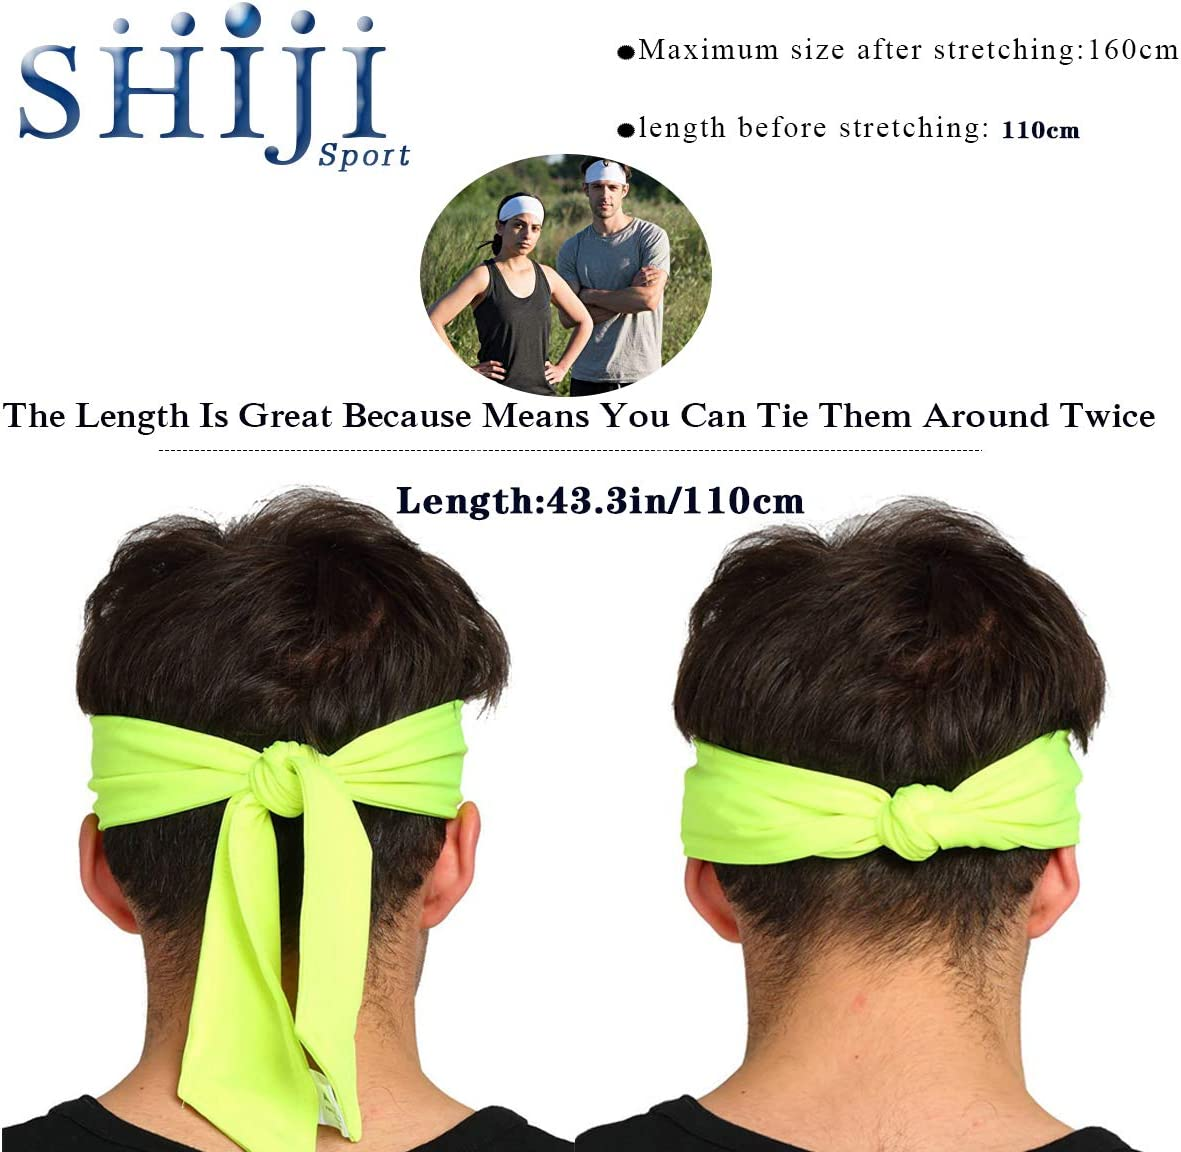 Sports Headband for Running Working Out and Premium Sweatband for Hairband with Performance Stretch. SHIJI Sports Head Tie for Women Men Tennis with Moisture Wicking /& Non Slip